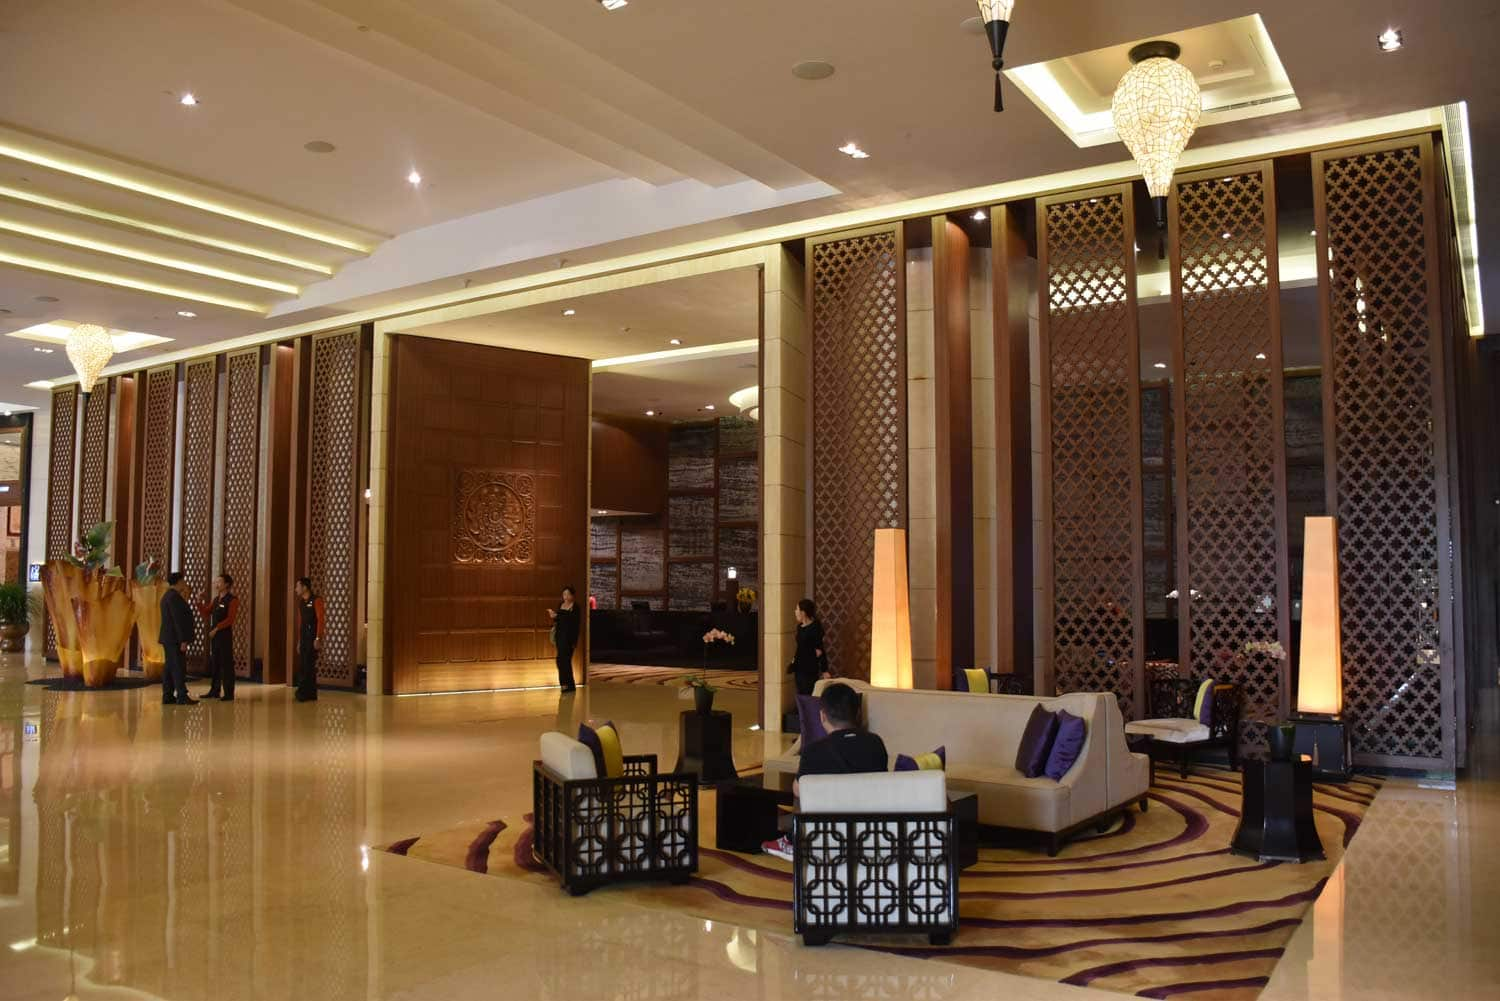 Banyan Tree lobby